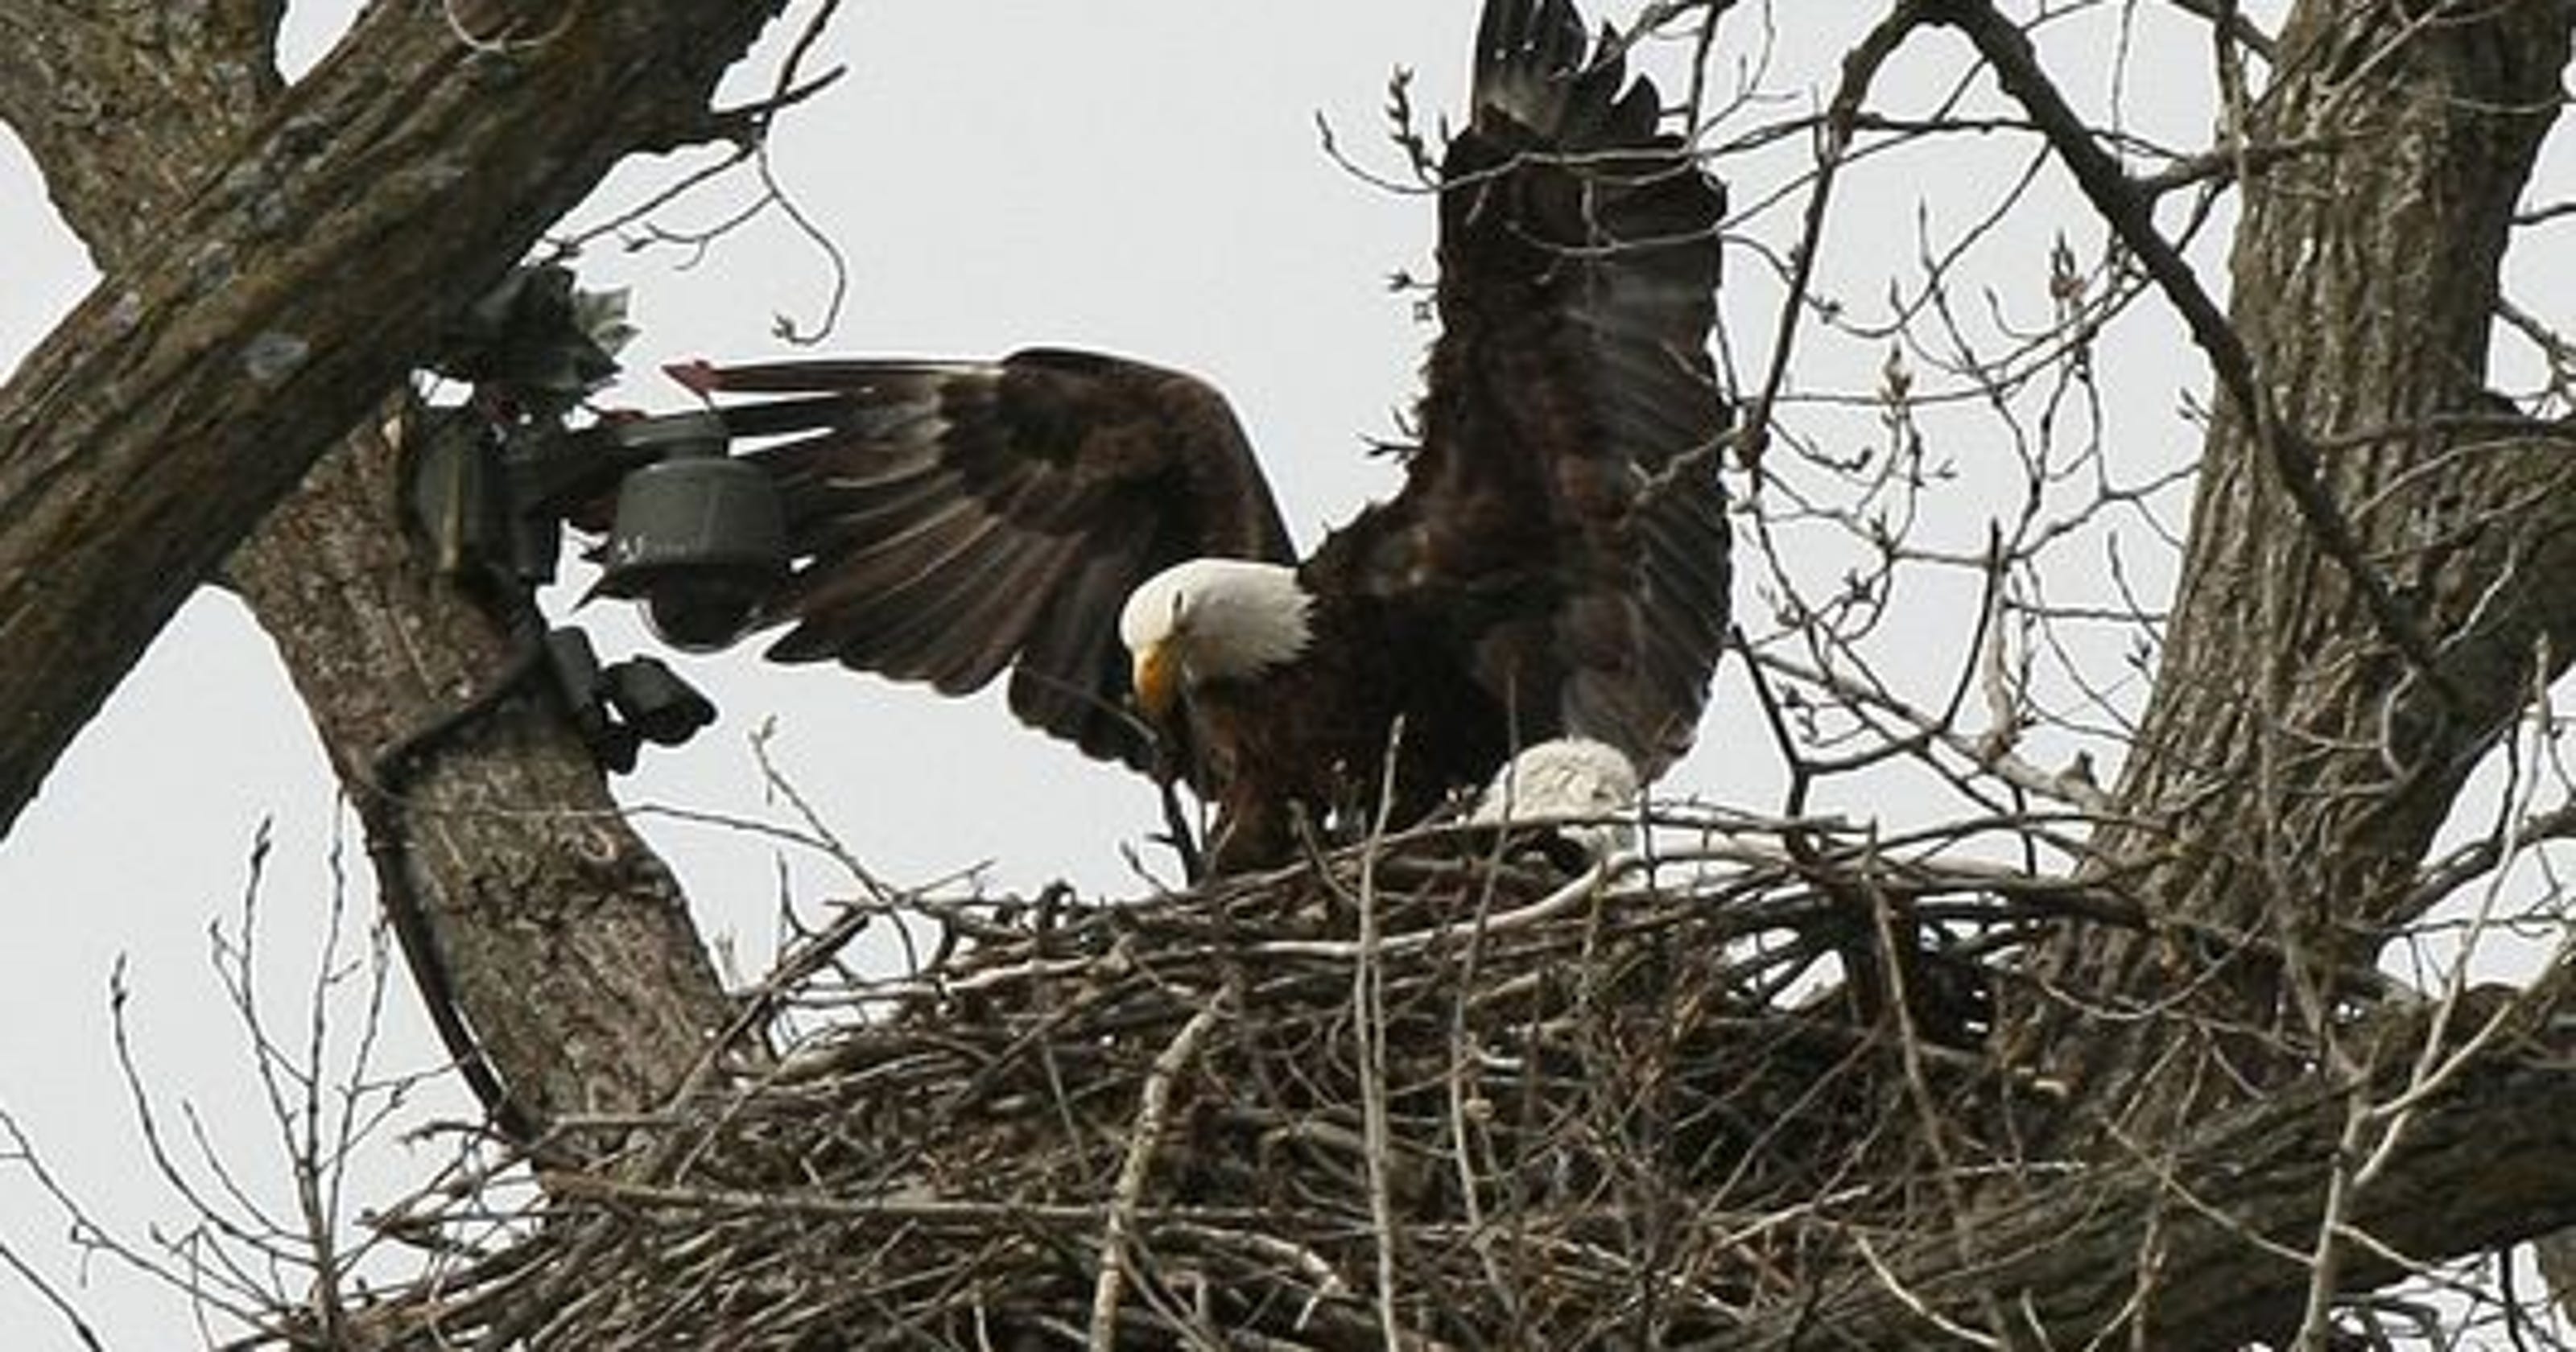 An Eagles Nest Is The M Located In Tallest Center Tree This Next Has Been By Same Eagle Pair For At Least 17 Years